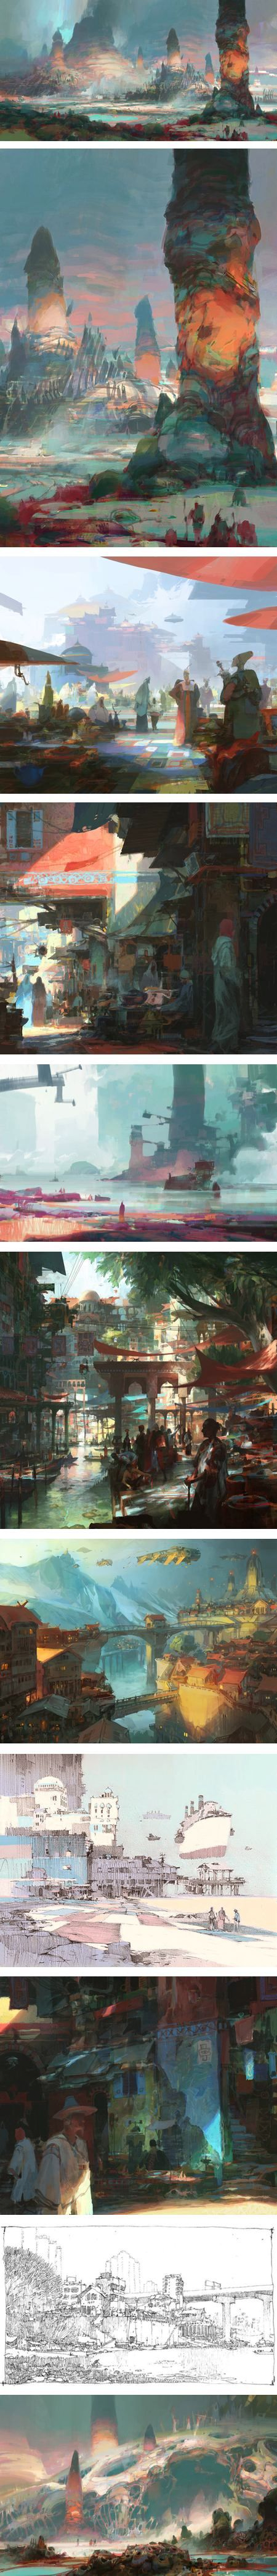 Concept art by Theo Prins. Ah all those lovely pastels!